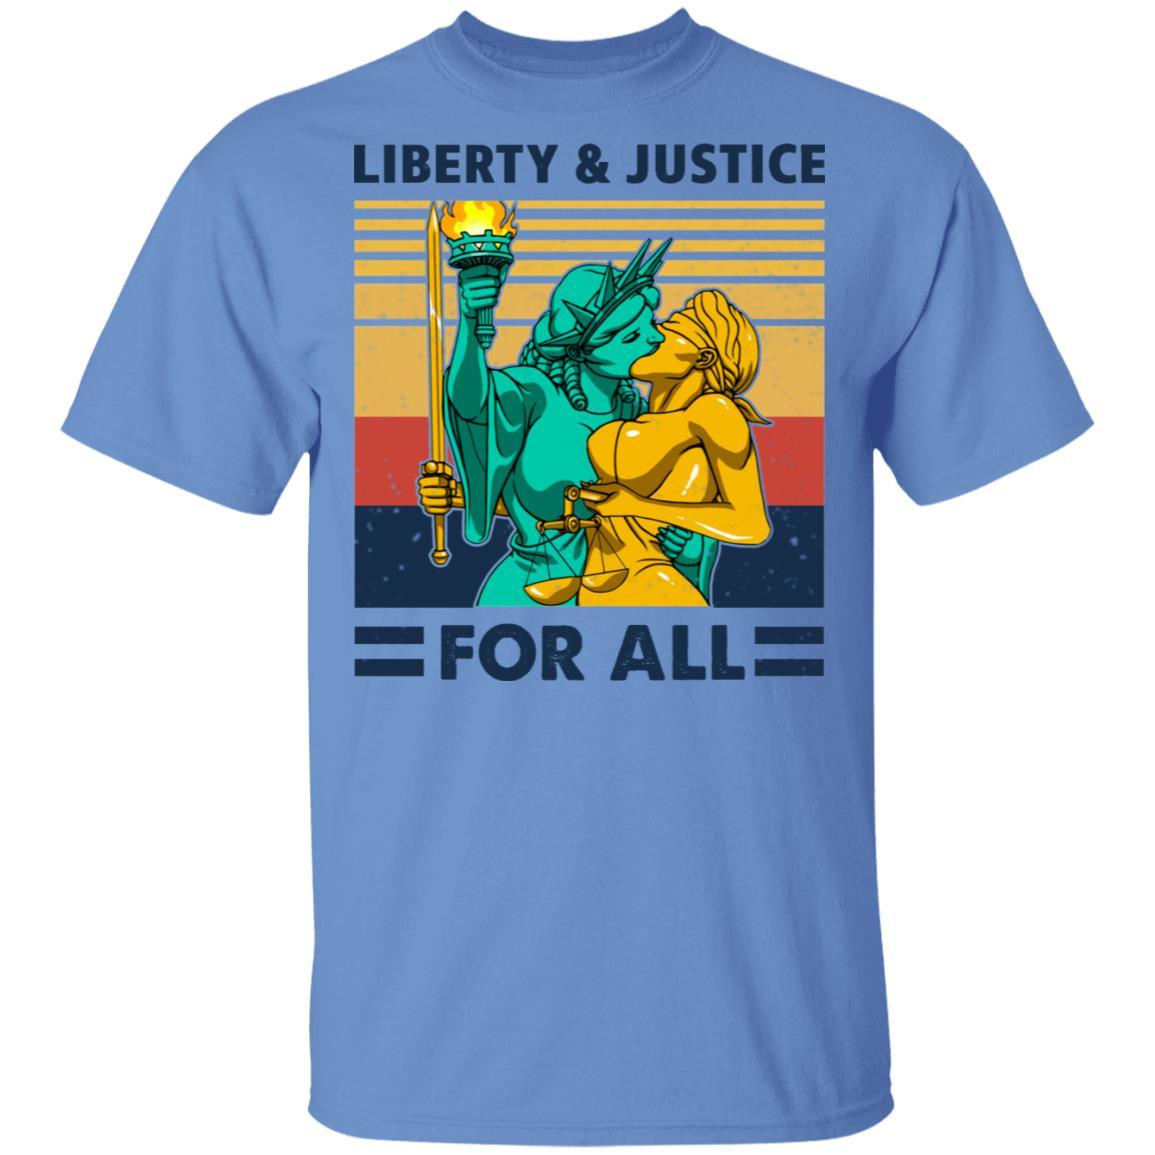 Liberty & Justice For All Vintage T-Shirts, Hoodies 1049-9955-88477981-48160 - Tee Ript